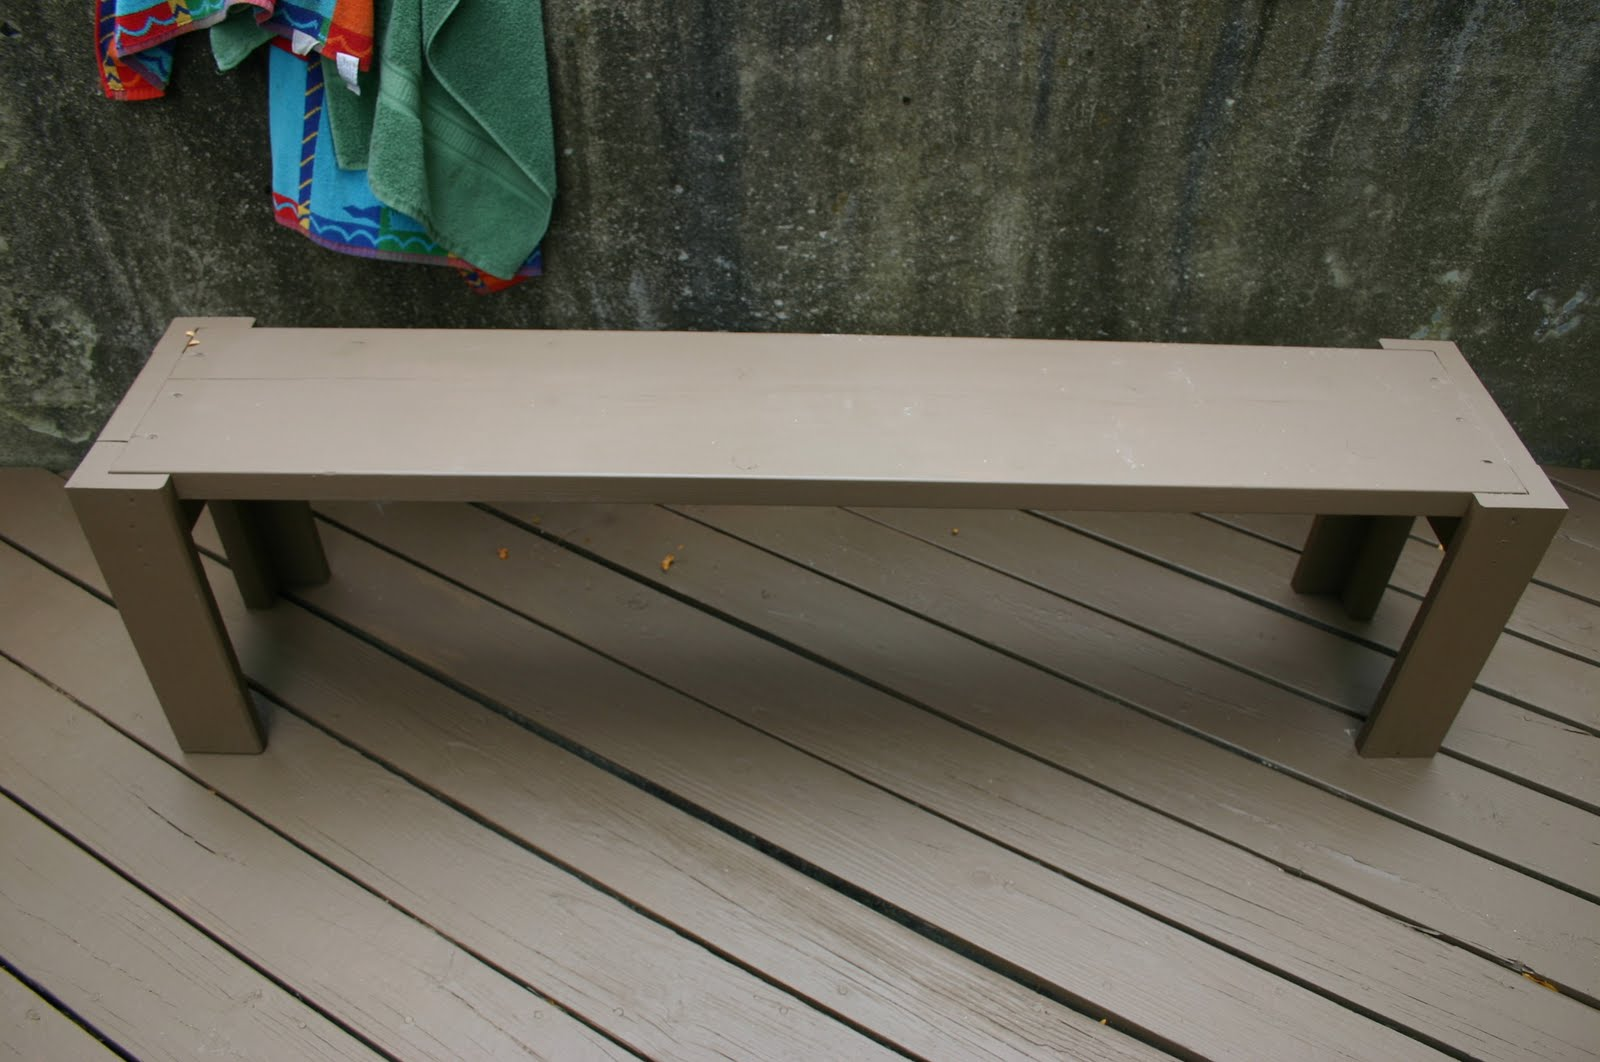 Deck Over Paint Behr And Paint Colors On Pinterest